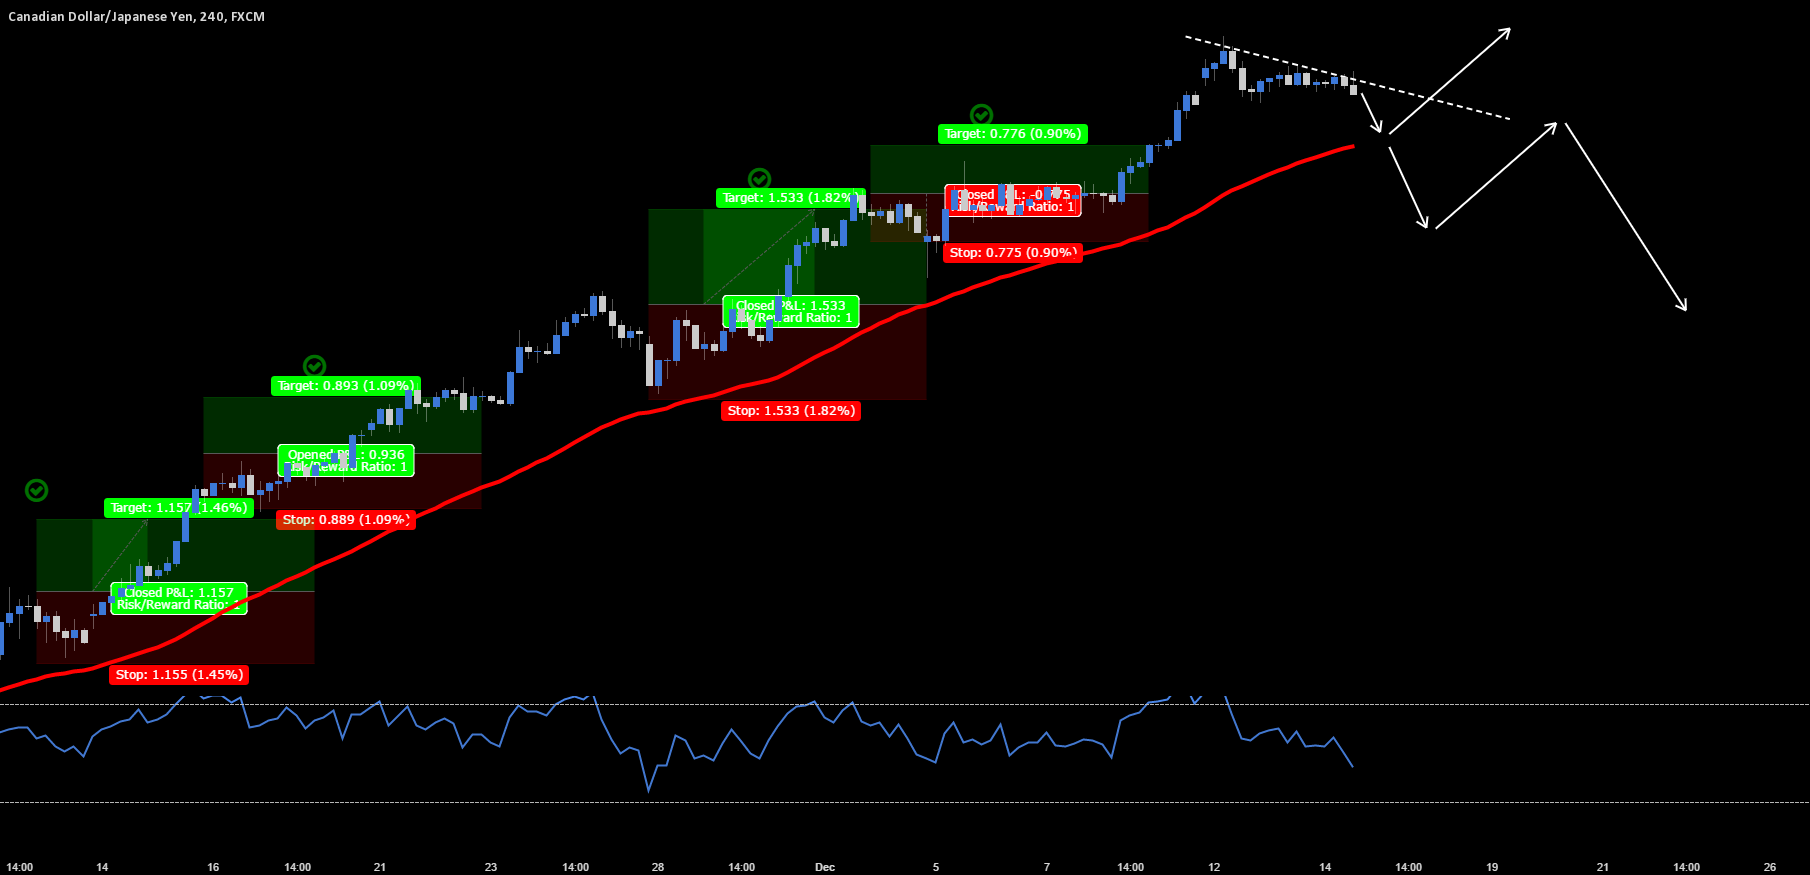 CAD.JPY - My Entry Strategy